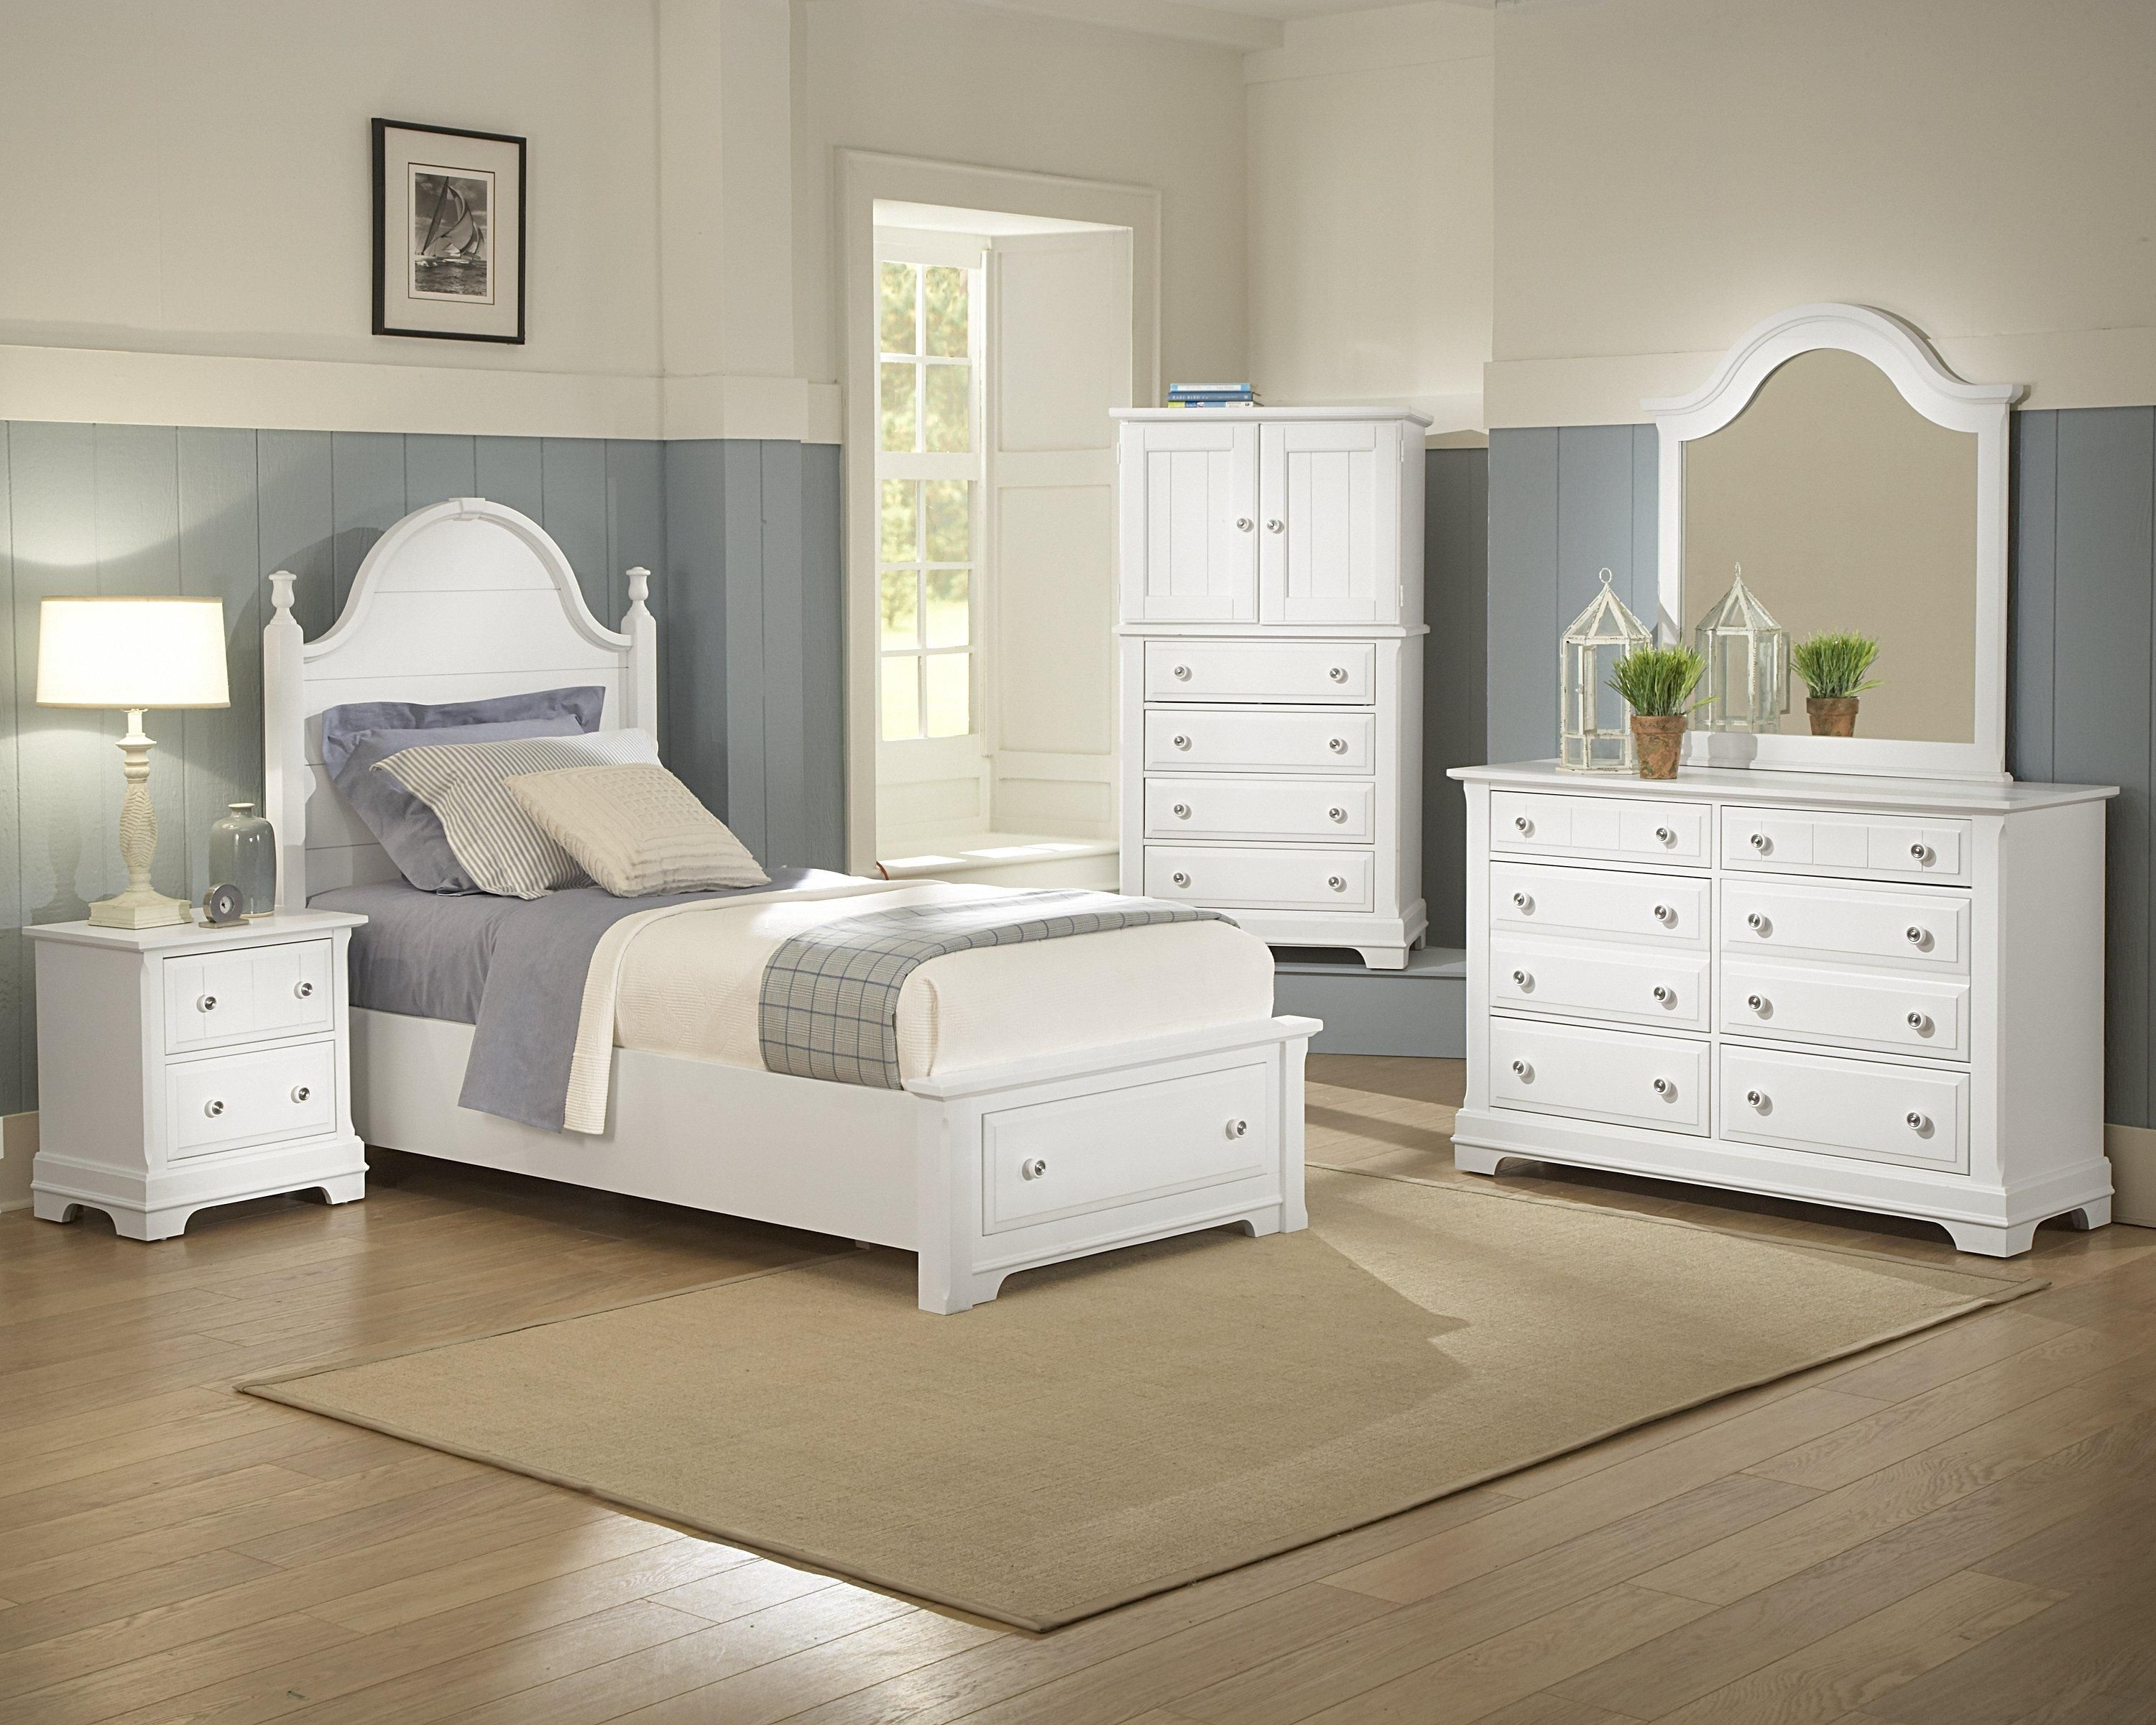 Vaughn bassett furniture cottage collection featuring for Matching bed and dresser